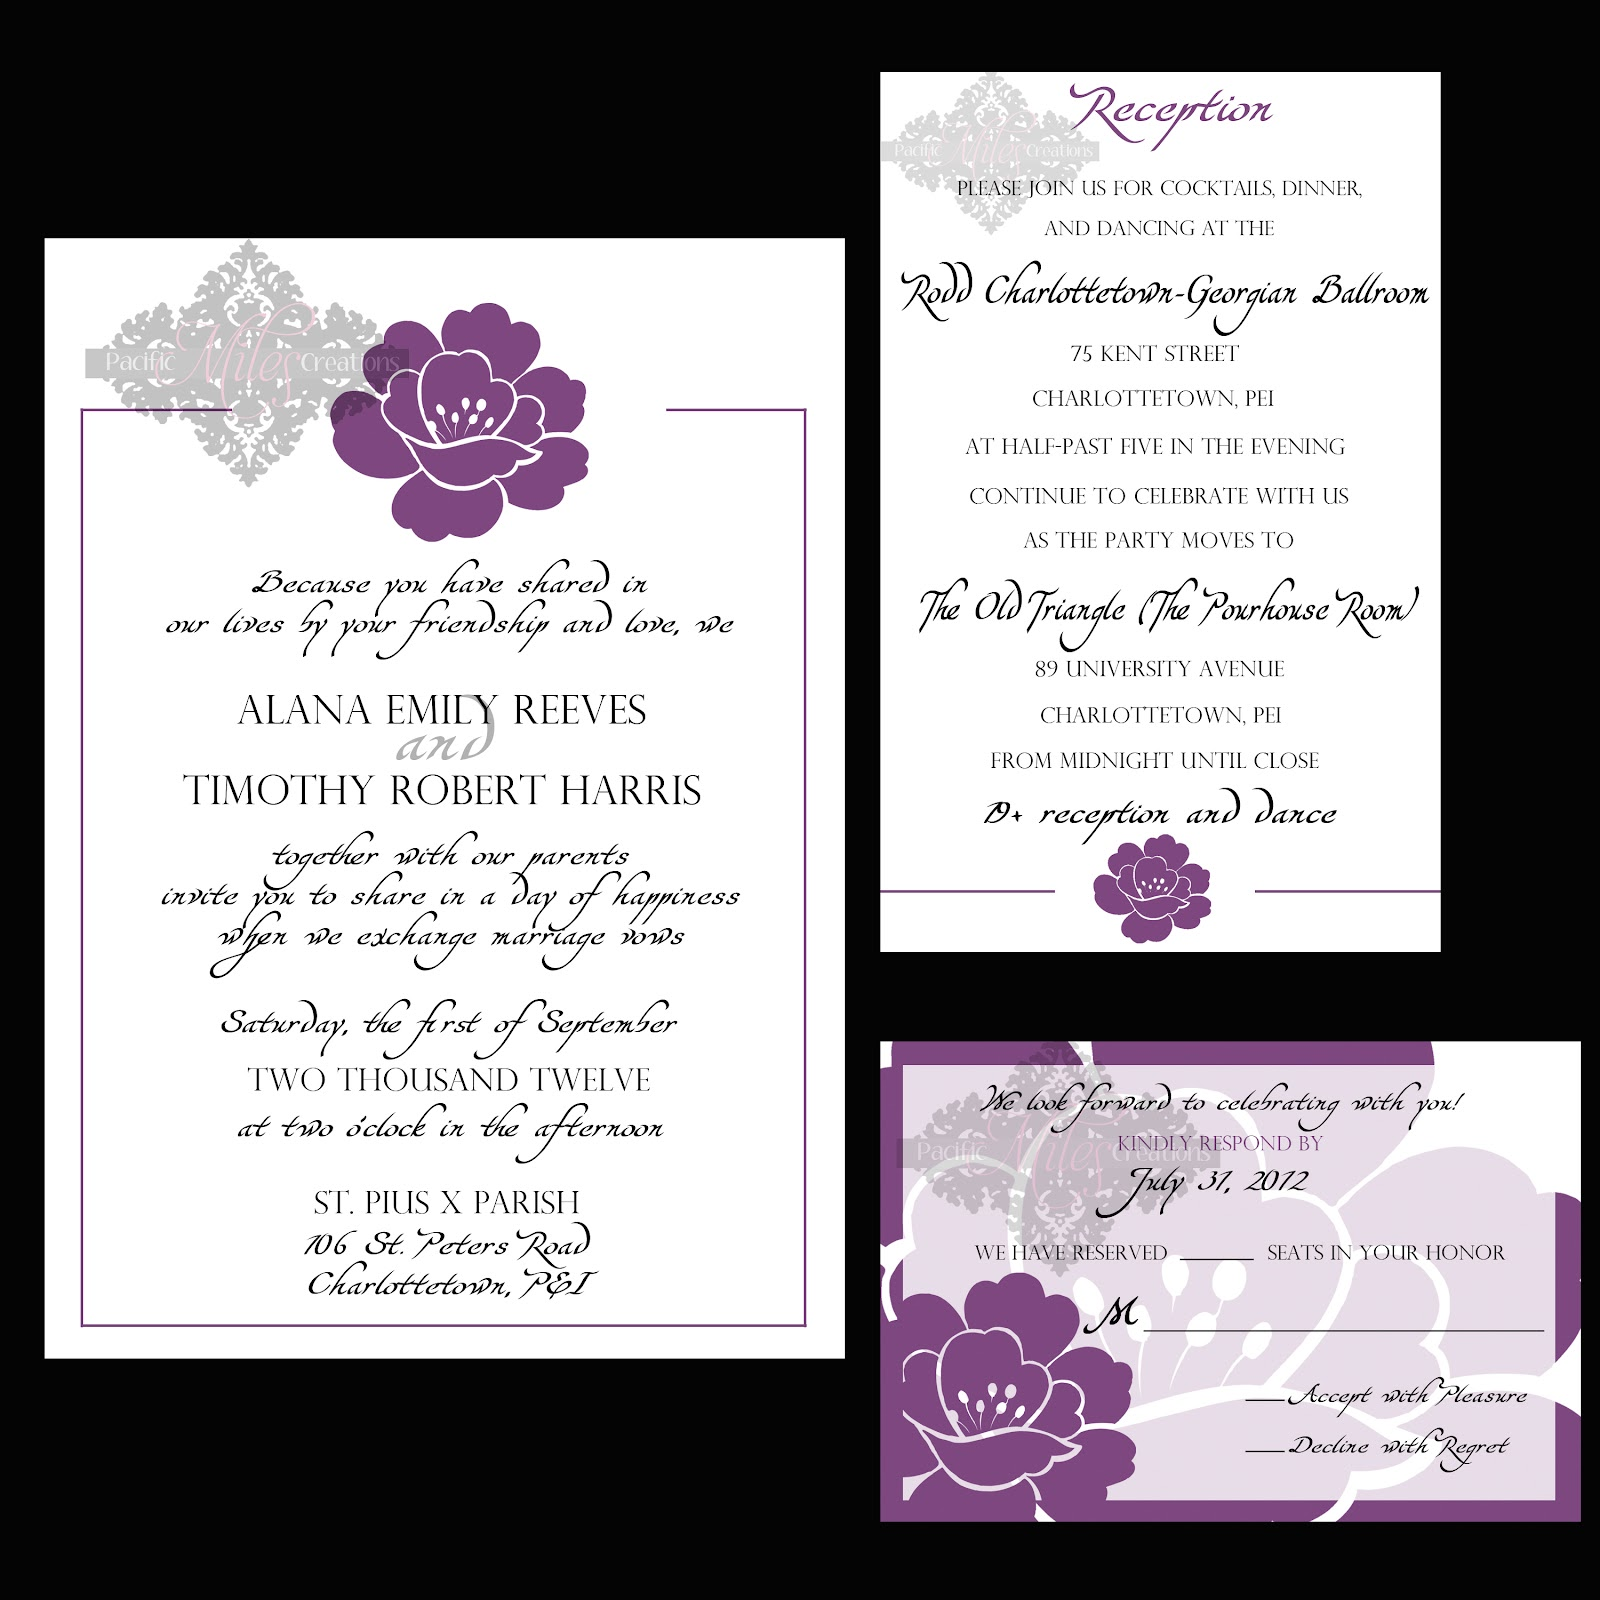 Invitations To A Wedding: Wedding Pictures Wedding Photos: Photo Wedding Invitations